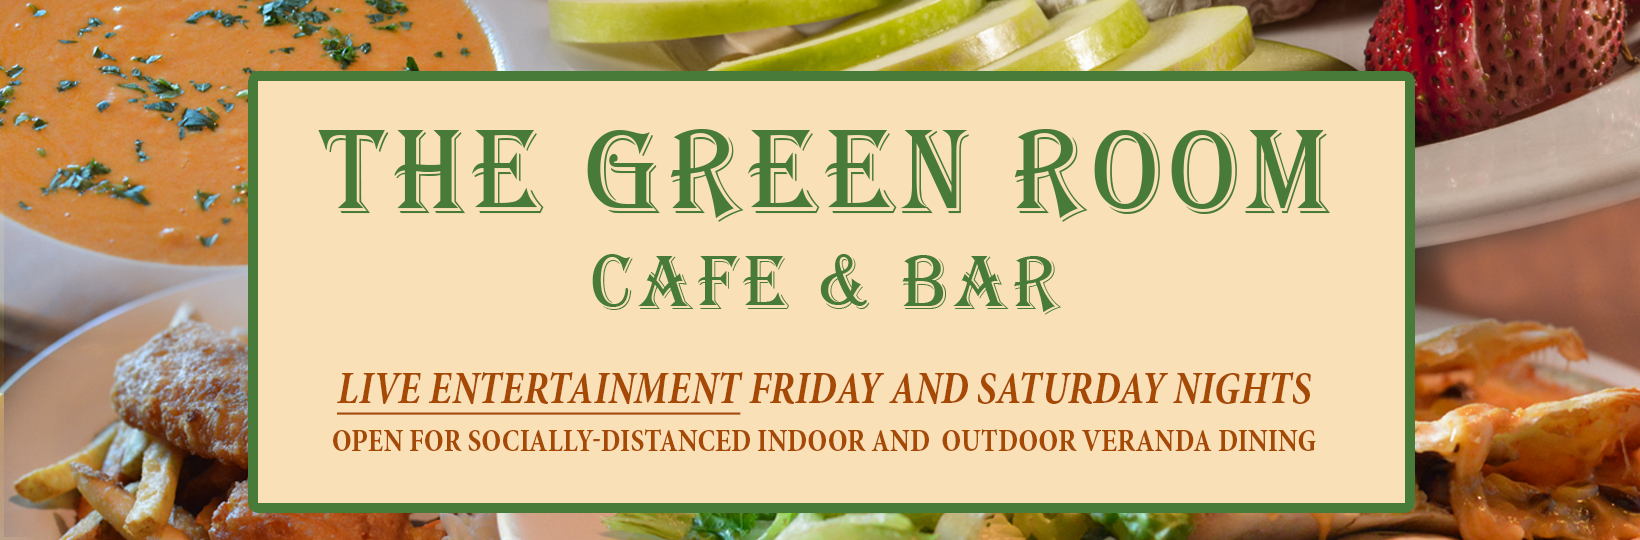 Green Room Cafe and Bar